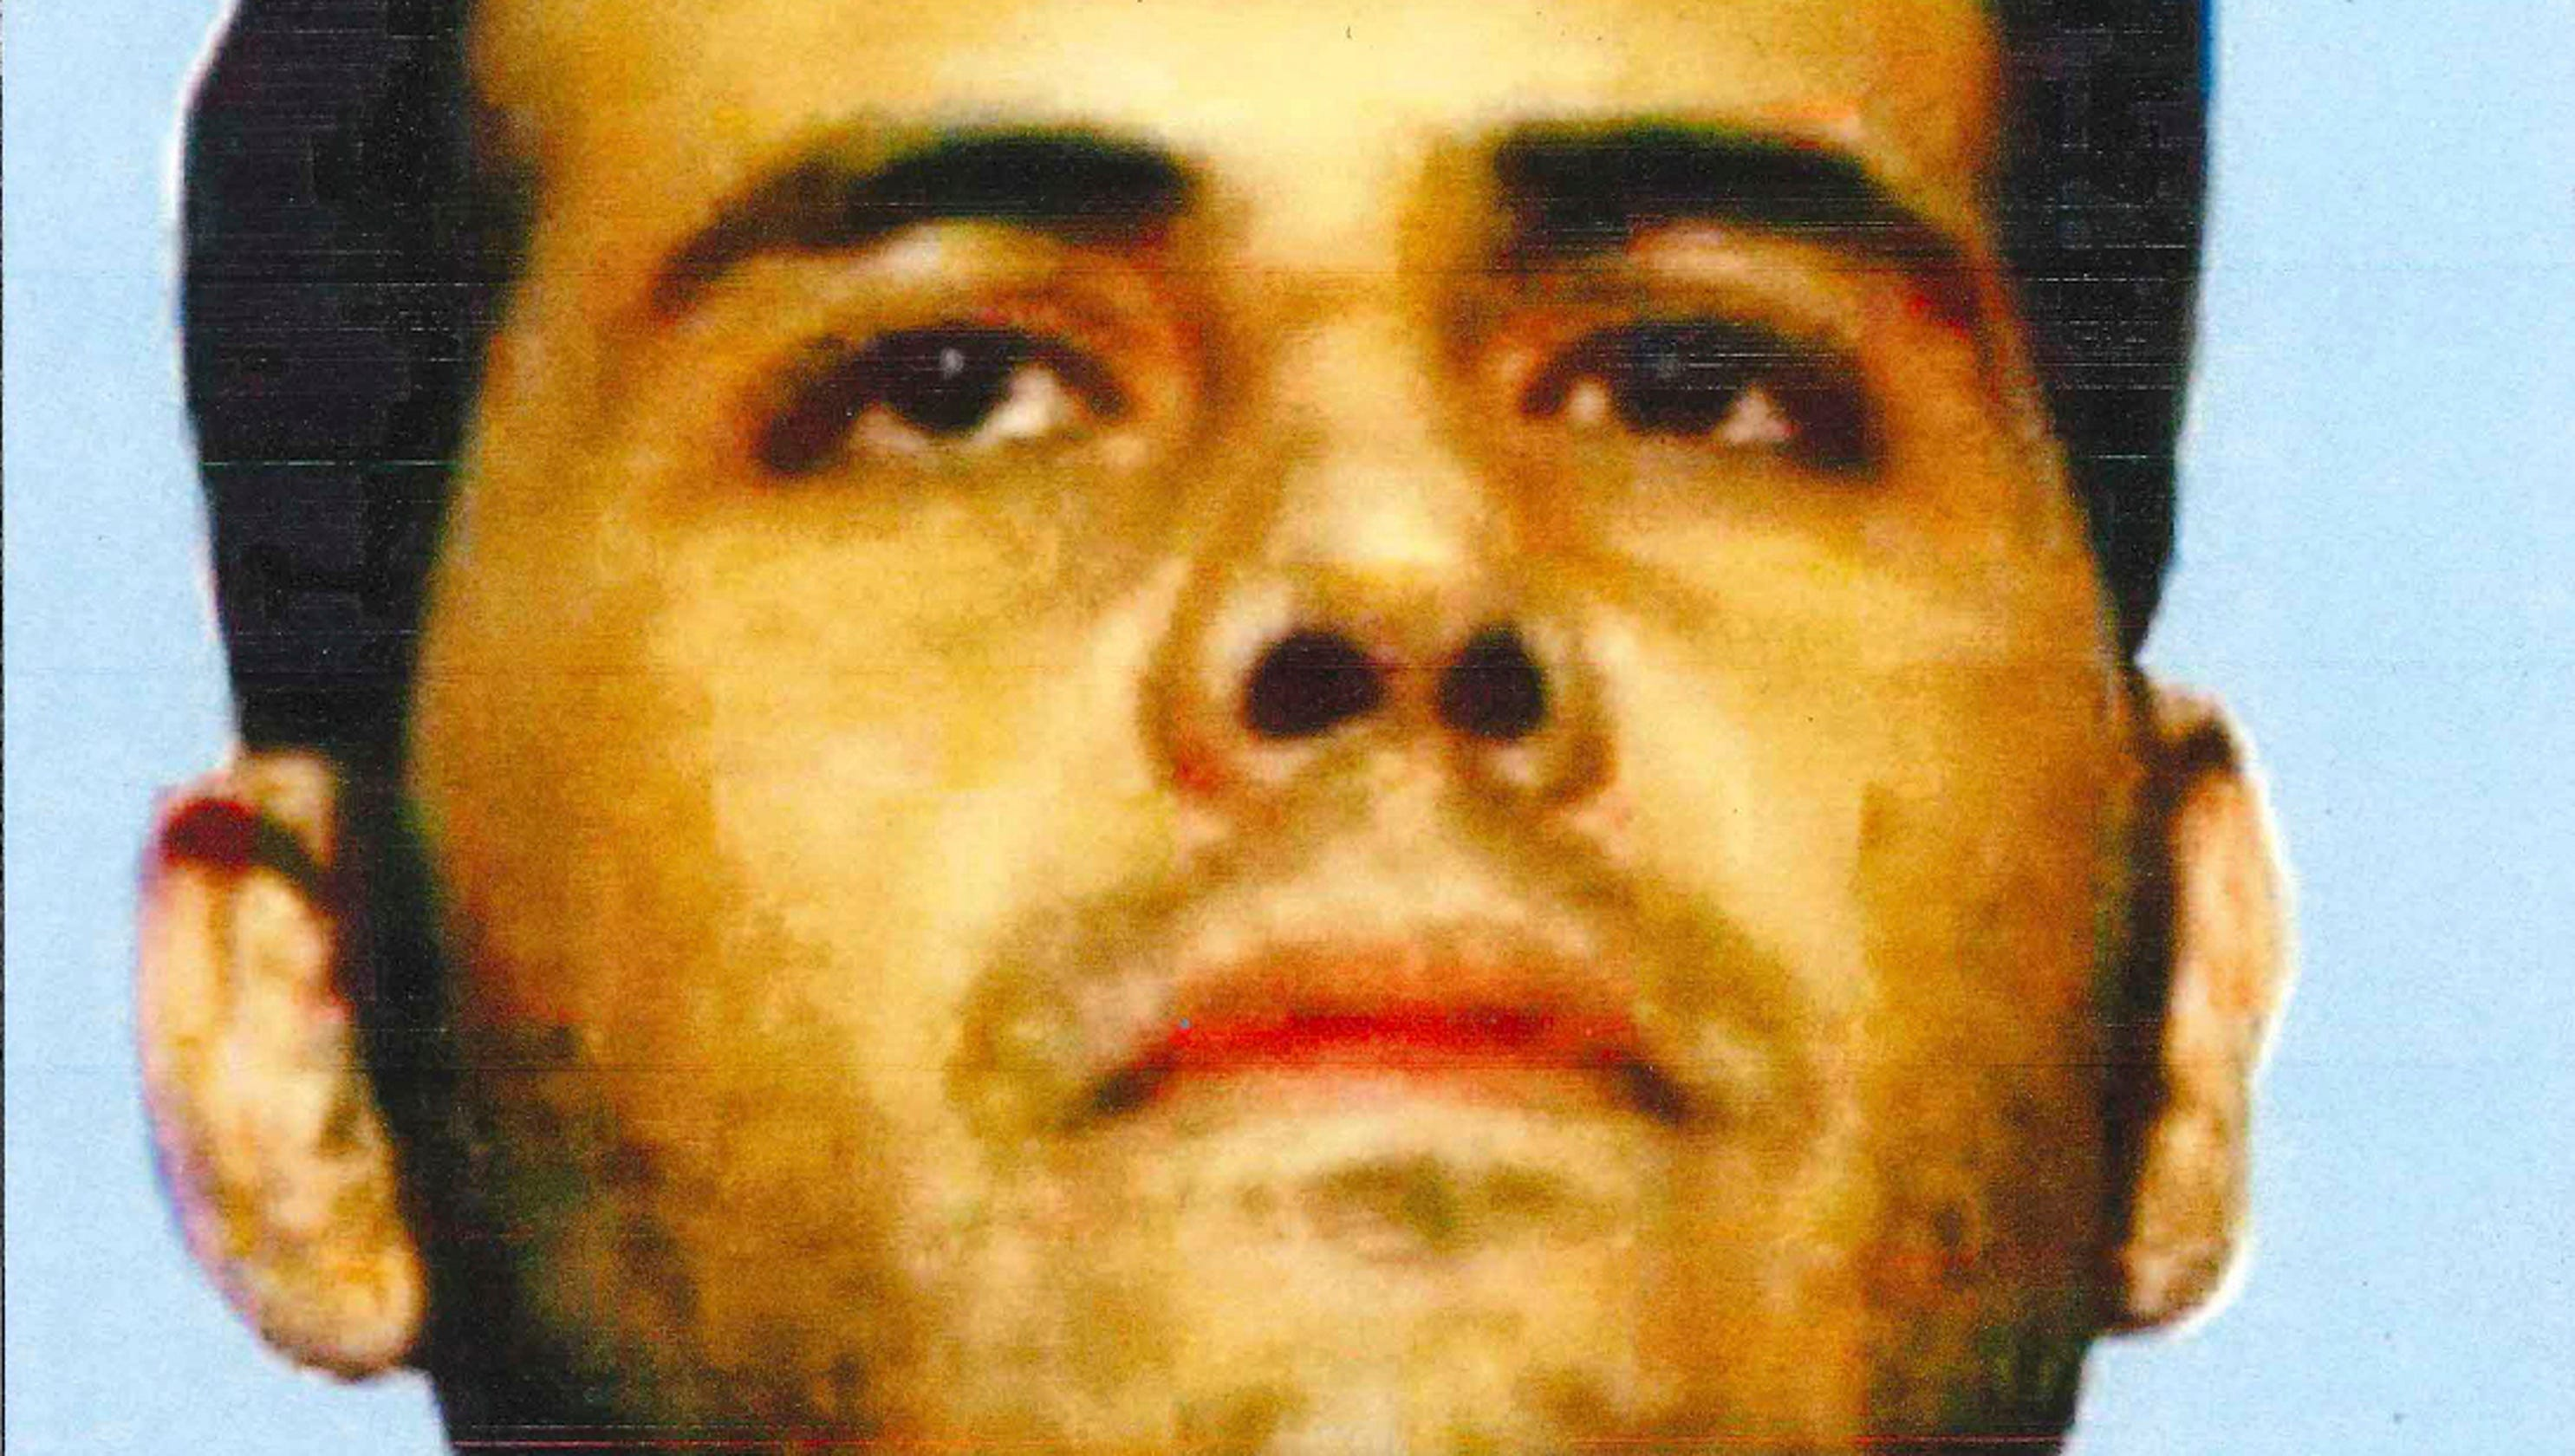 El Chapo trial: Former cartel member takes stand for the